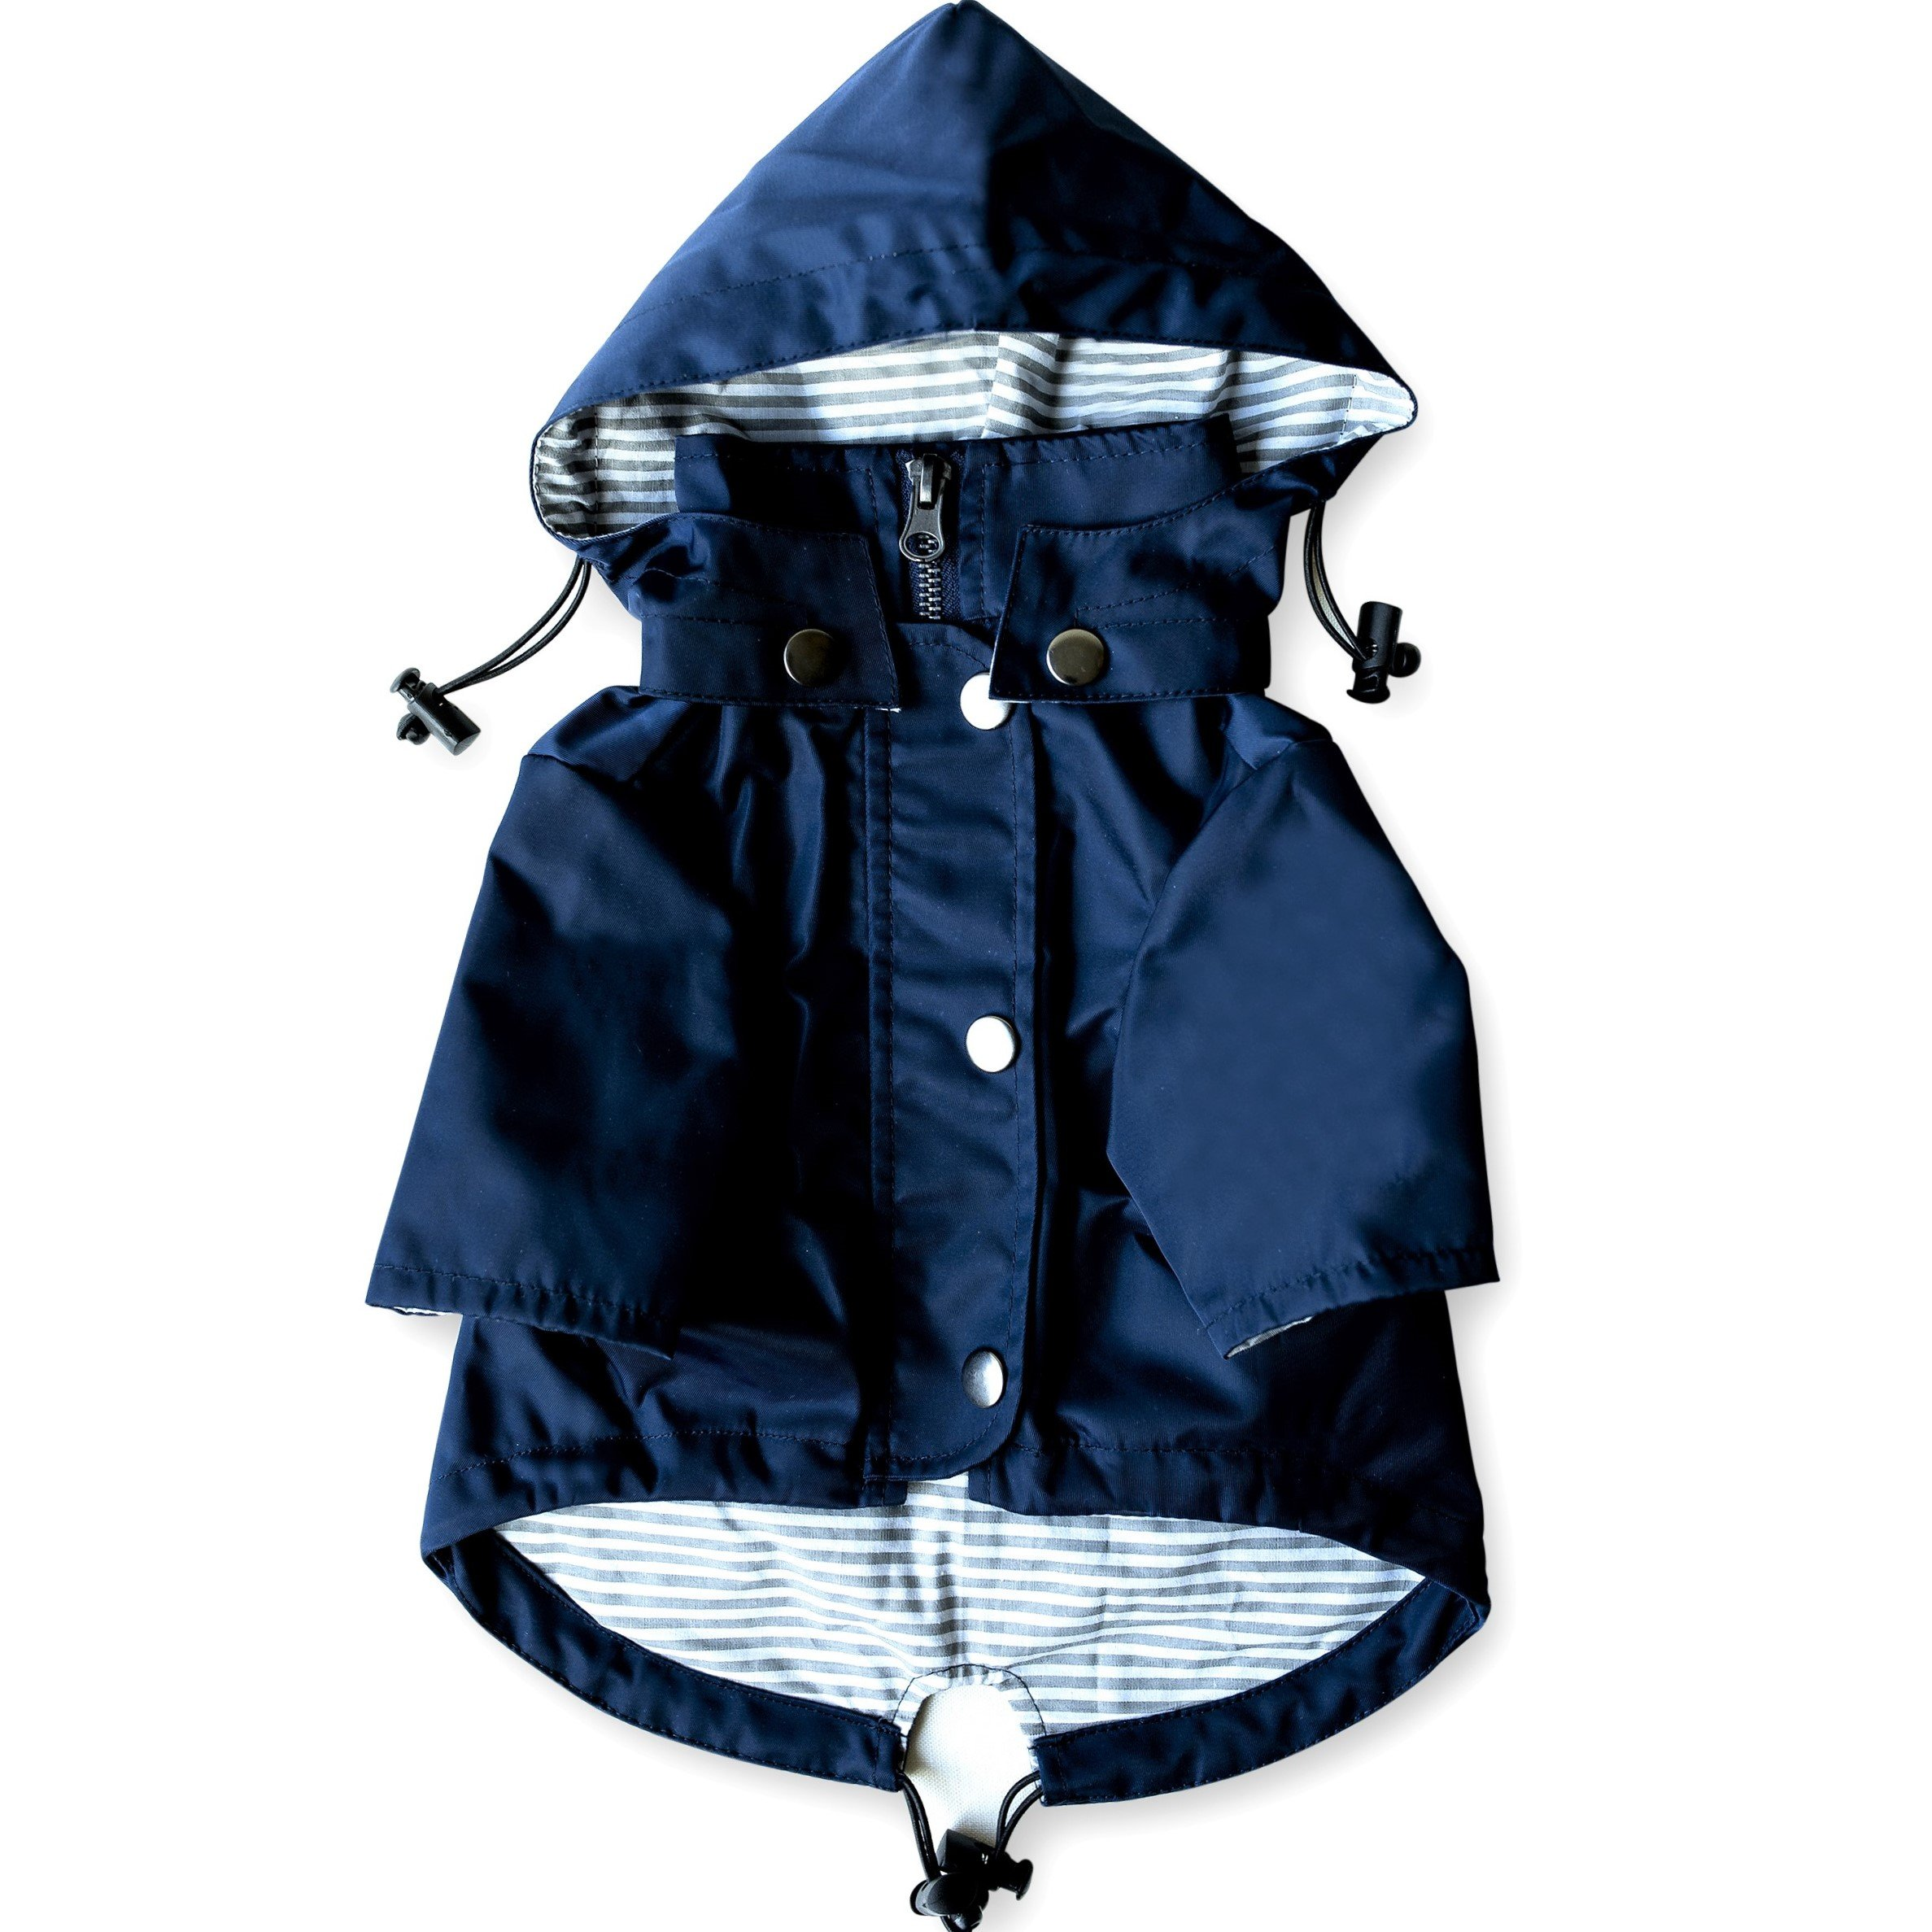 Navy Blue Zip Up Dog Raincoat with Reflective Buttons, Pockets, Rain/Water Resistant, Adjustable Drawstring, Removable Hood - Size XS to XXL Available - Stylish Premium Dog Raincoats by Ellie (M) by Ellie Dog Wear